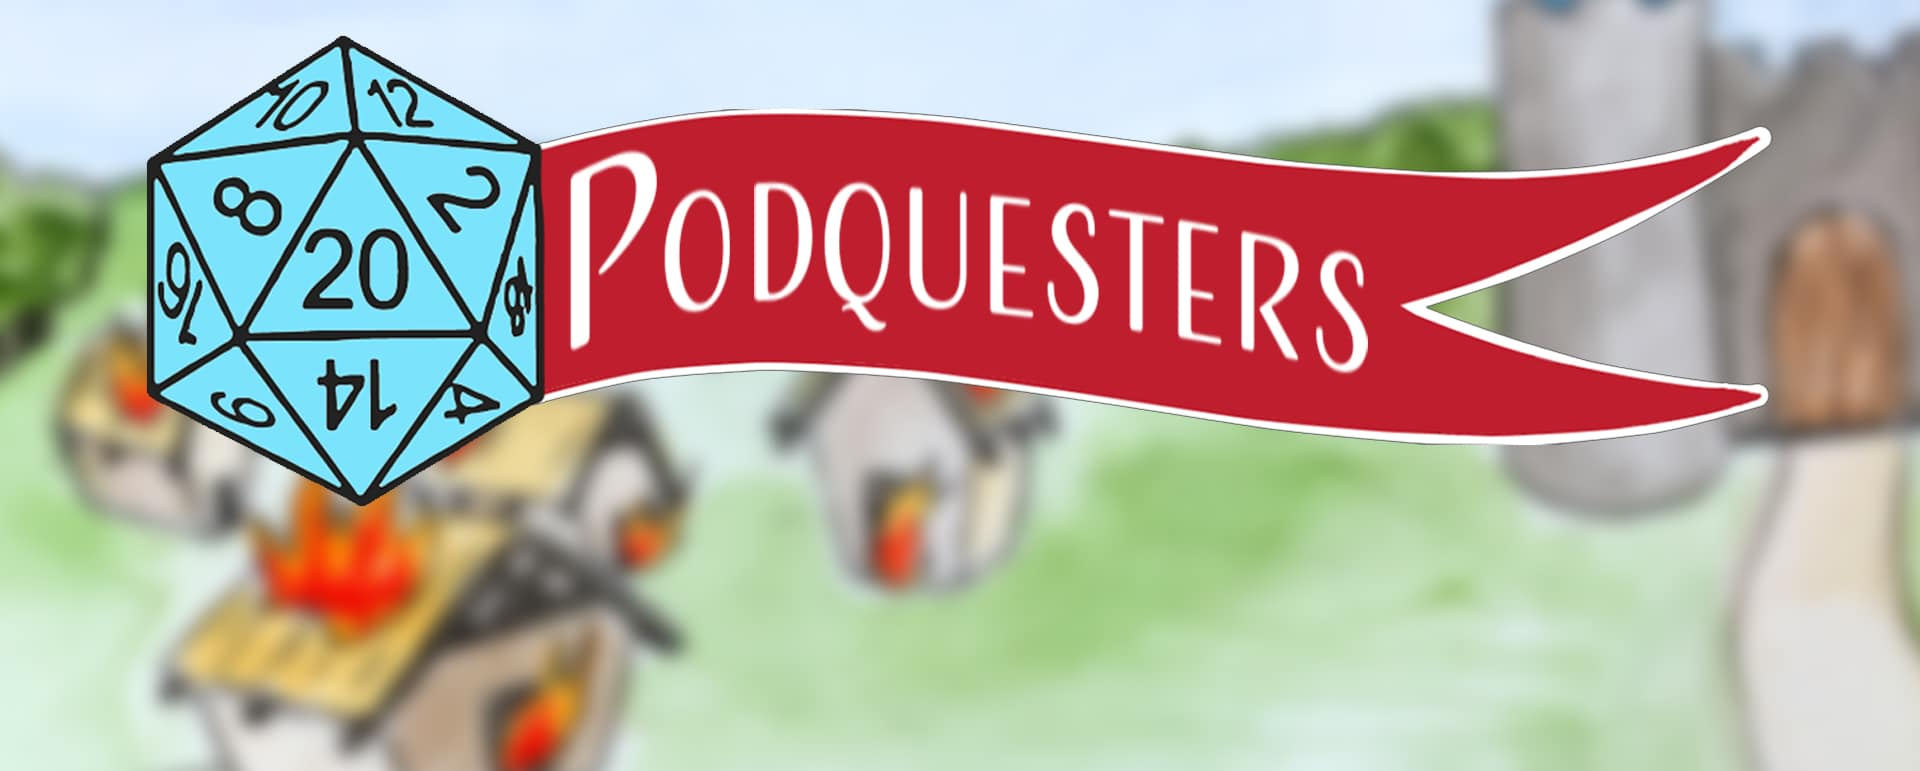 Podquesters - Episode 40: The Final Battle!